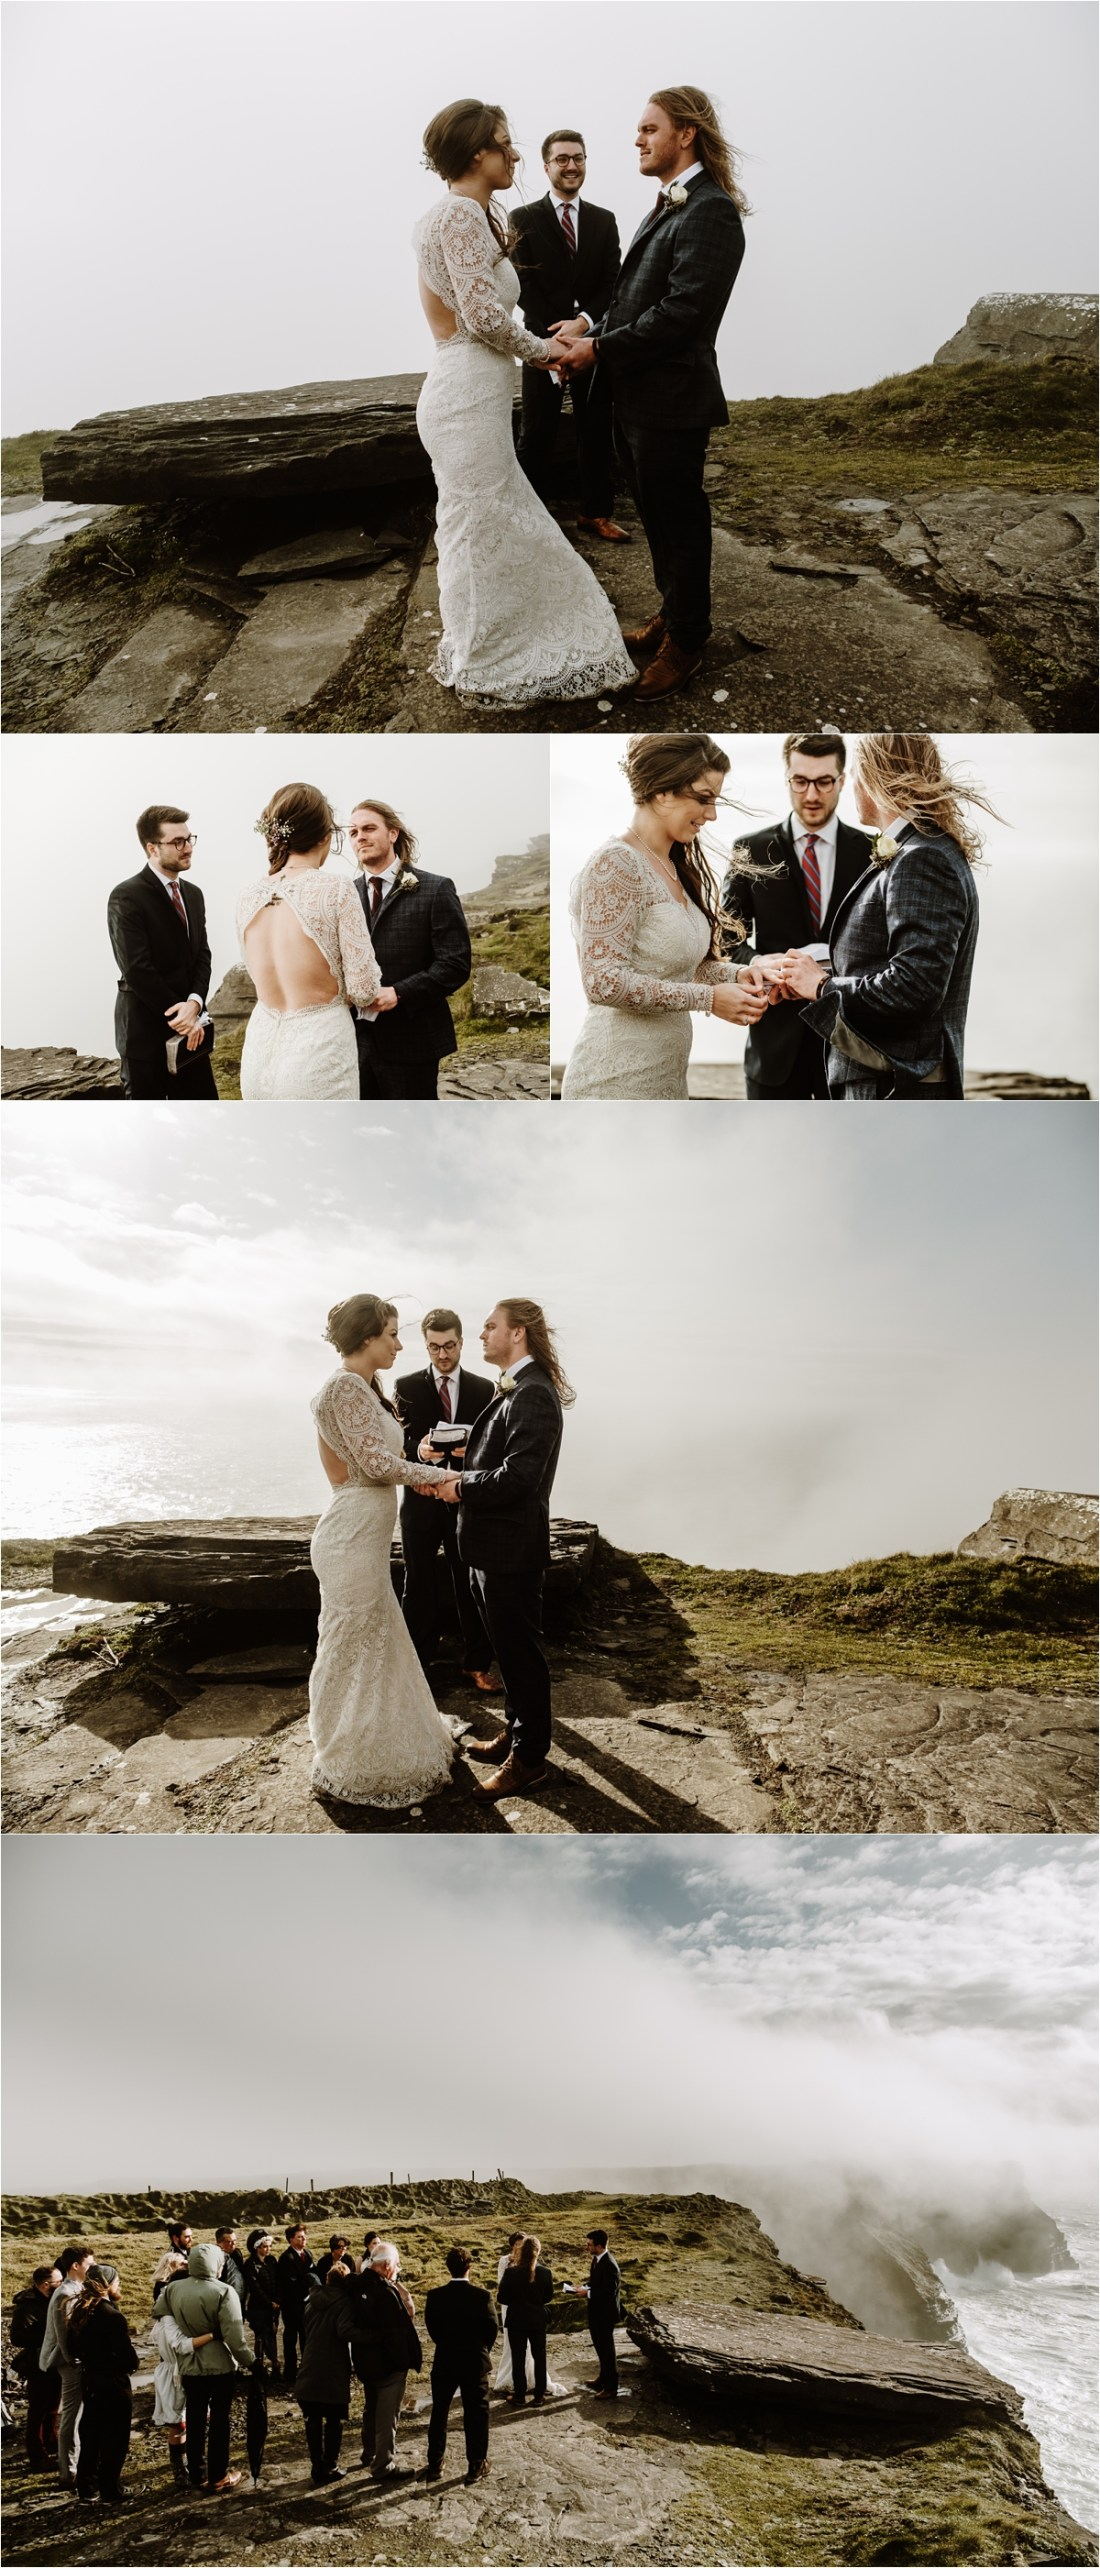 The fog starts to lift during this Cliffs of Moher elopement ceremony in Ireland. Photos by Europe Elopement Photographer Wild Connections Photography